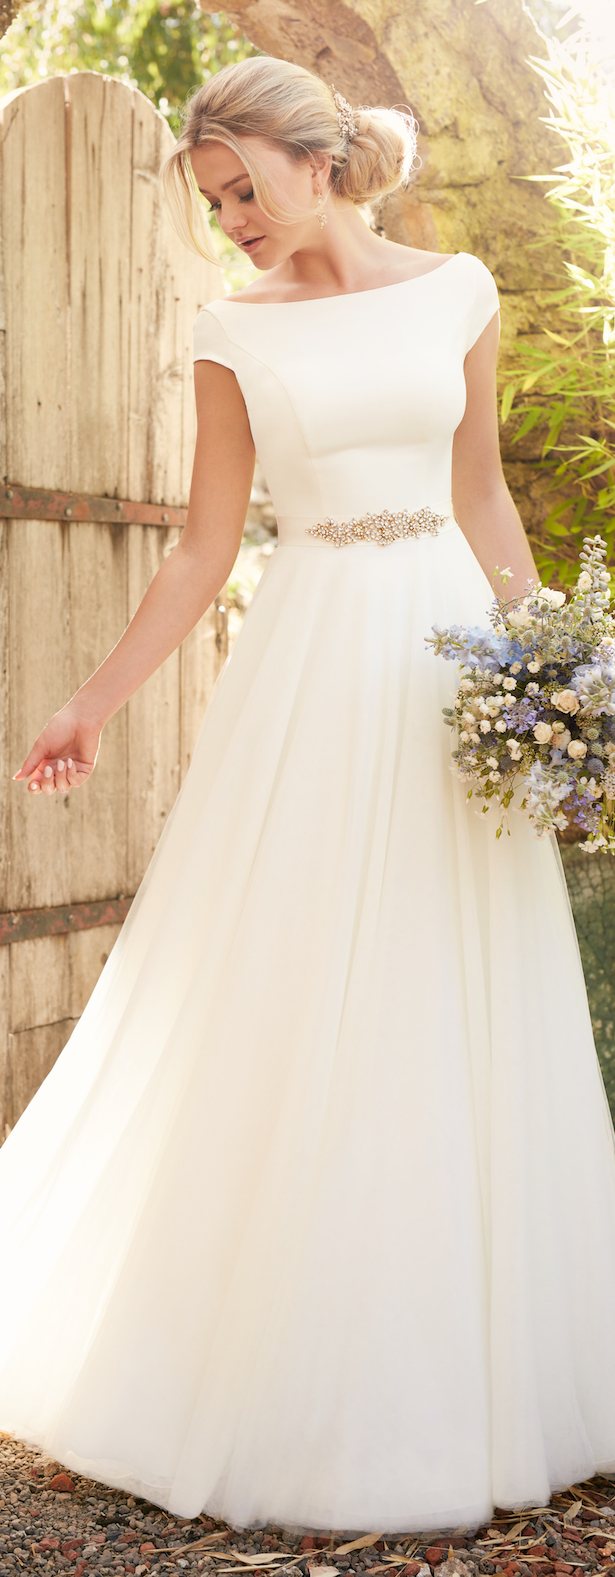 Essense of Australia Spring 2017 Bridal Collection